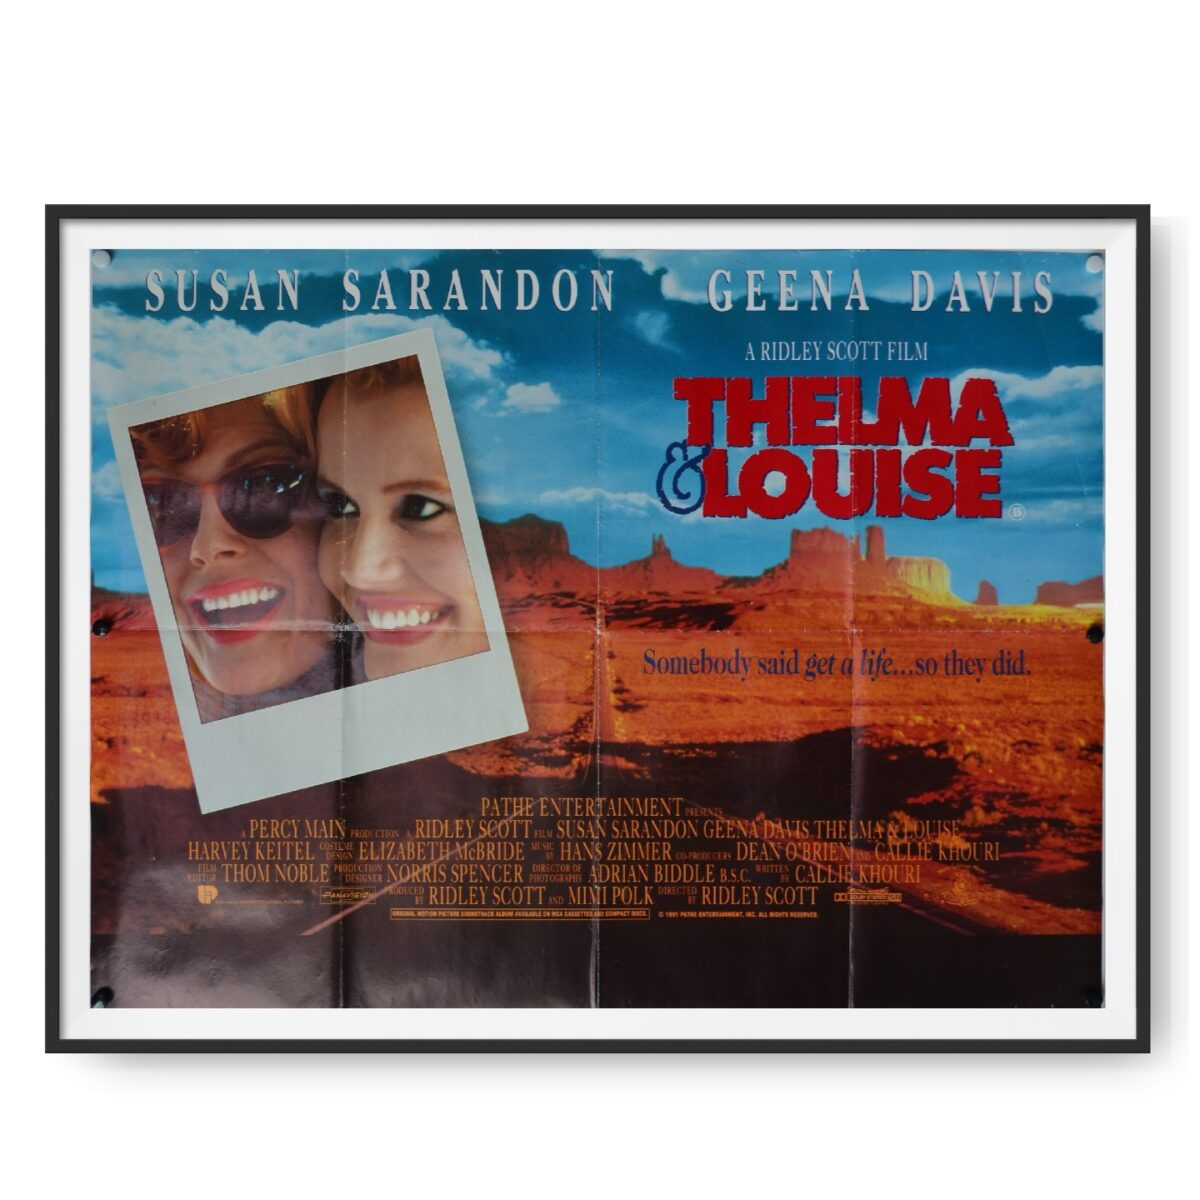 Geena Davis and Susan Sarandon can be seen on this cinema poster for Thelma and Louise.